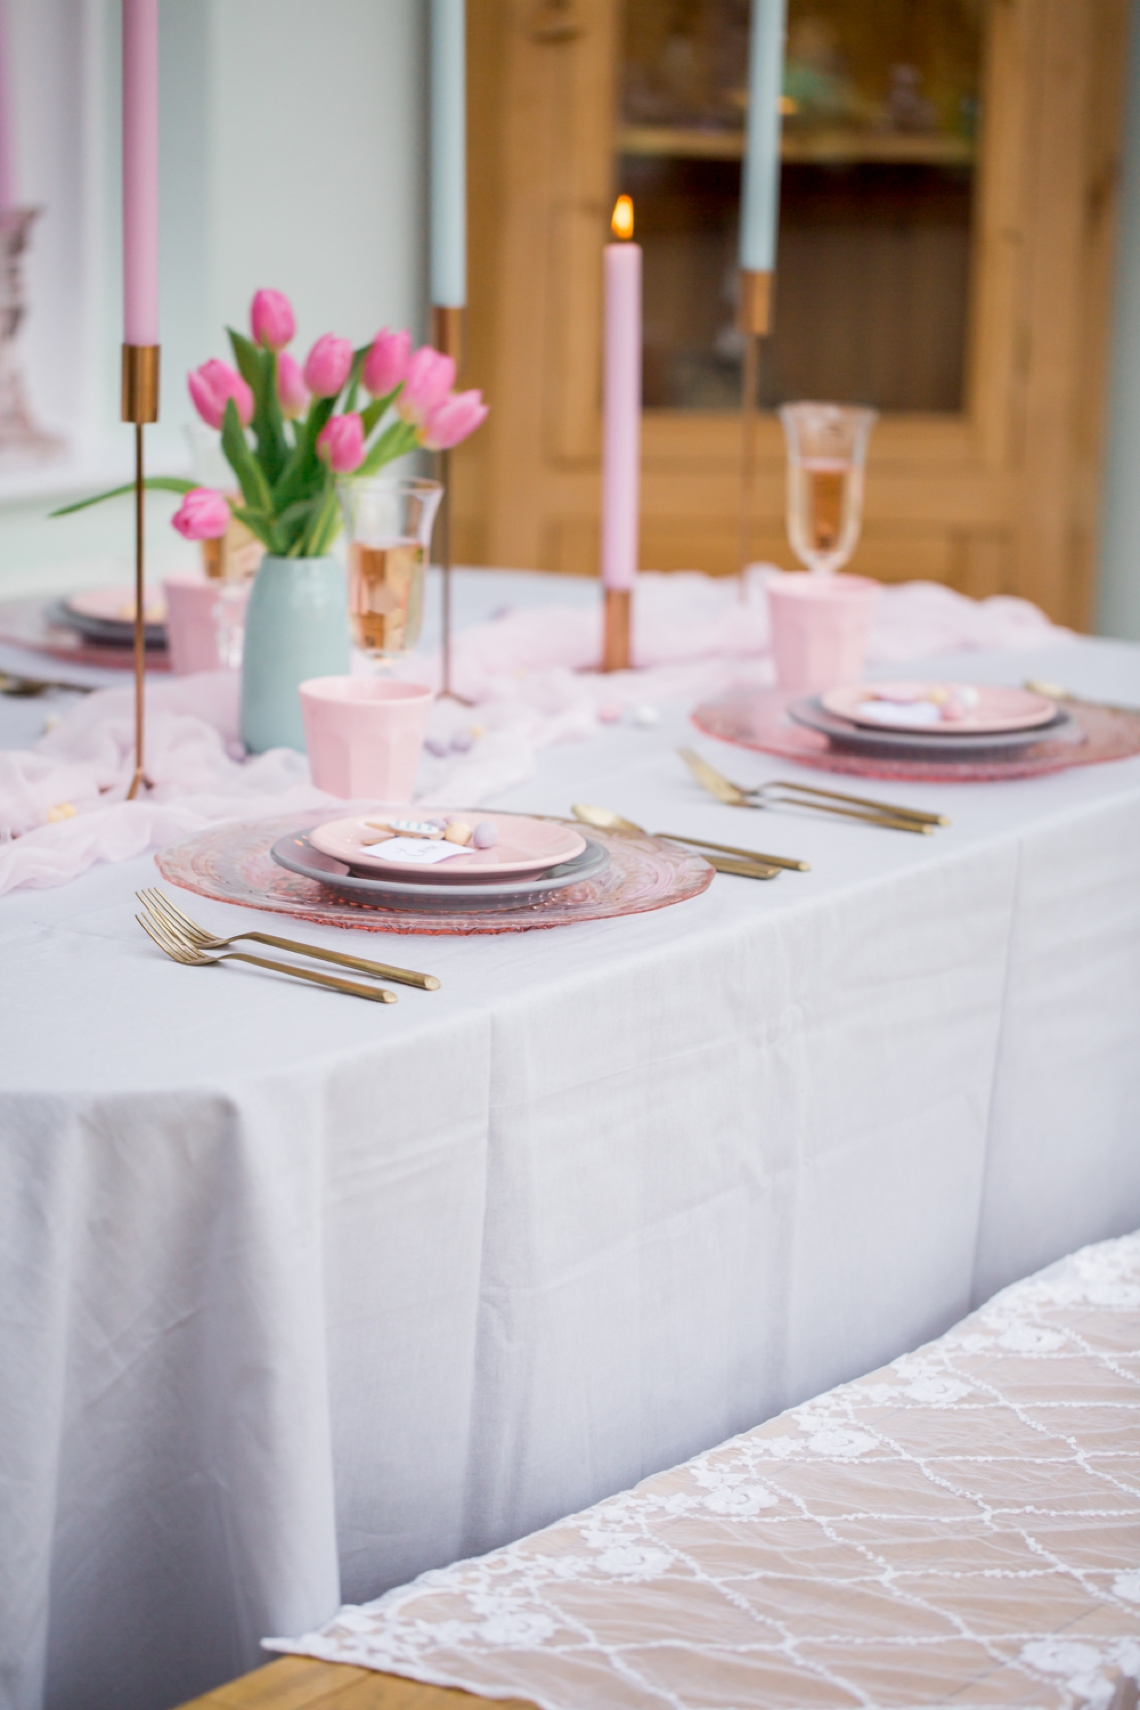 How To Create A Pretty Pastel Table Setting This Easter